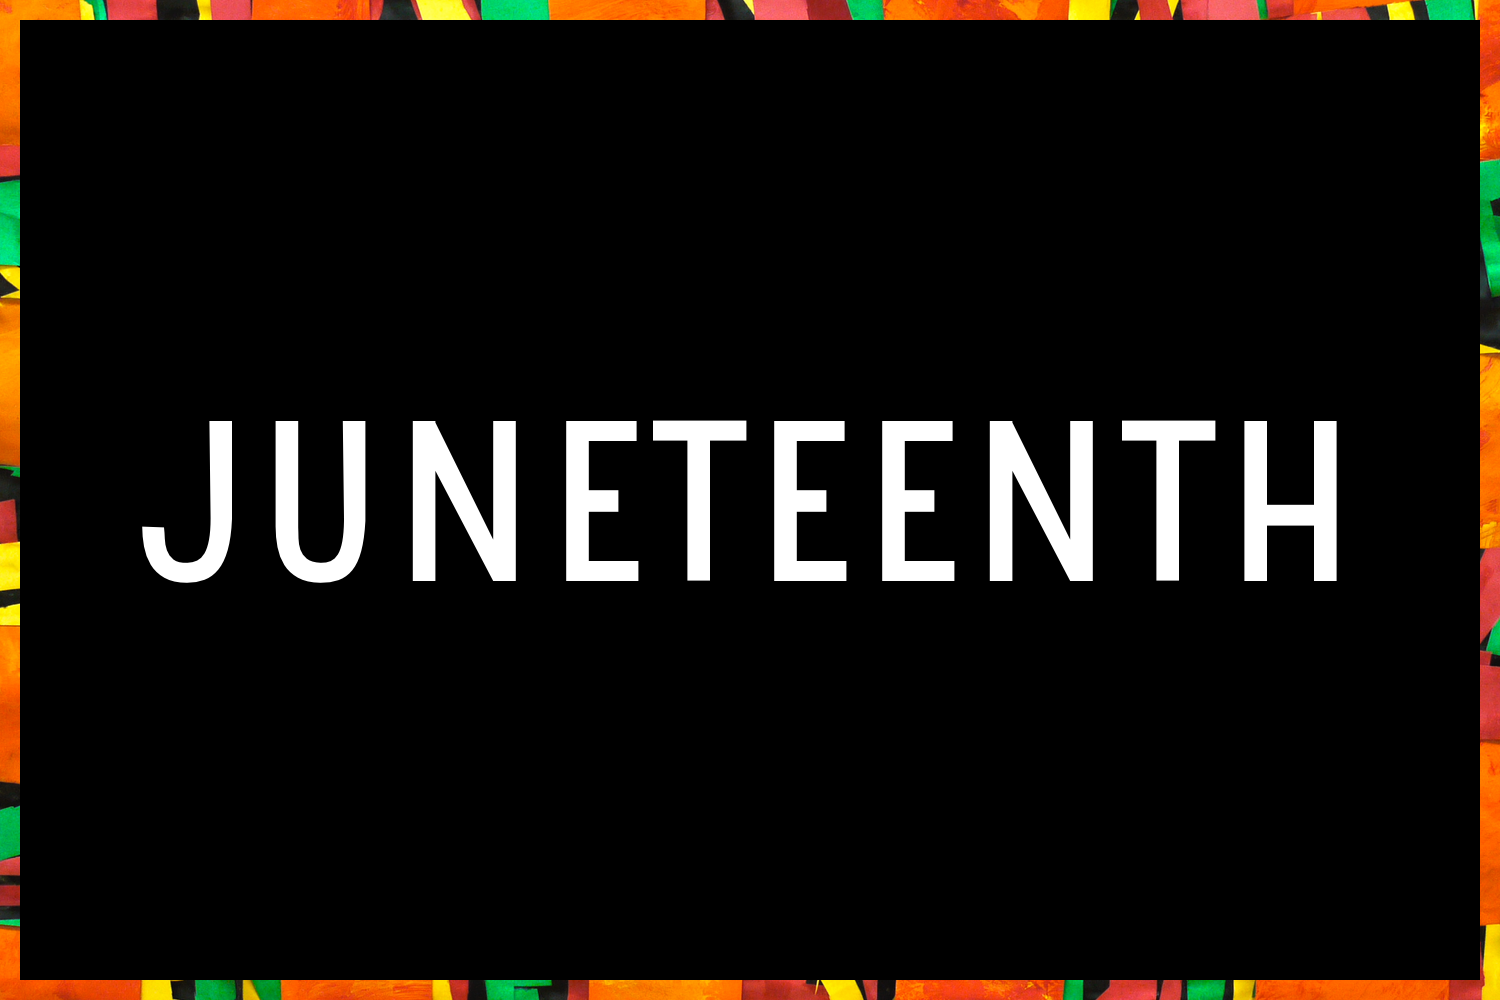 A Juneteenth Celebration